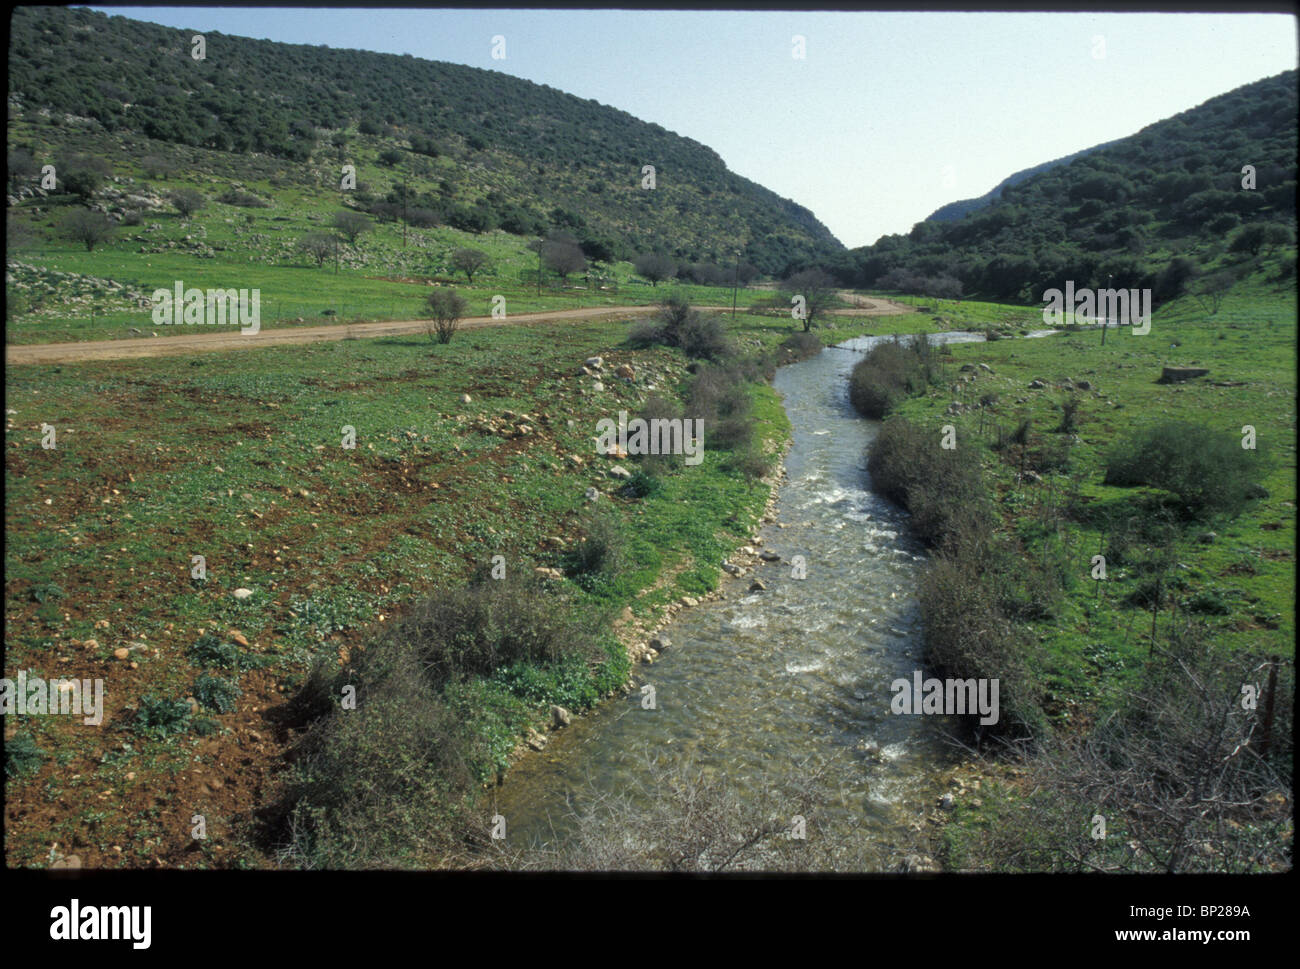 1960. UPPER GALILEE, THE DISHON RIVER - Stock Image